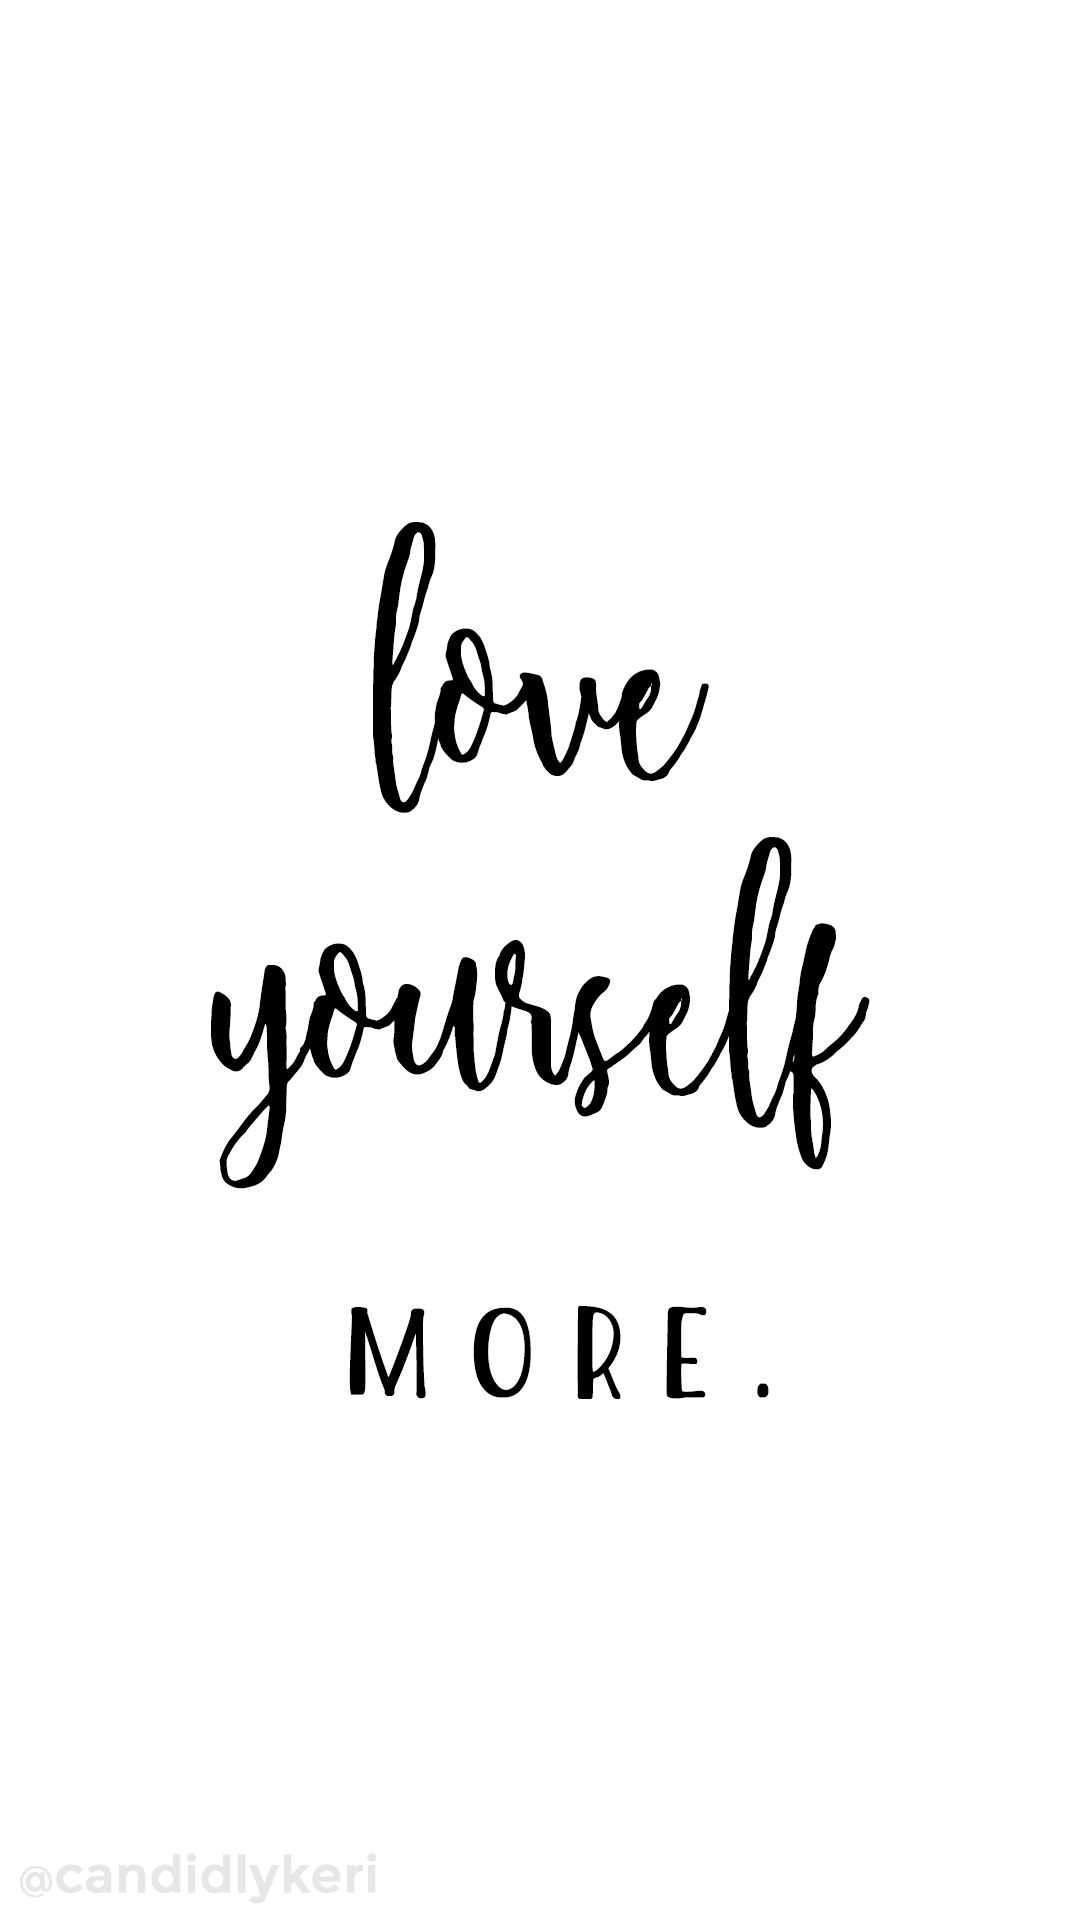 Love Yourself Wallpaper Iphone : Love Yourself More Quote inspirational self love wallpaper ...